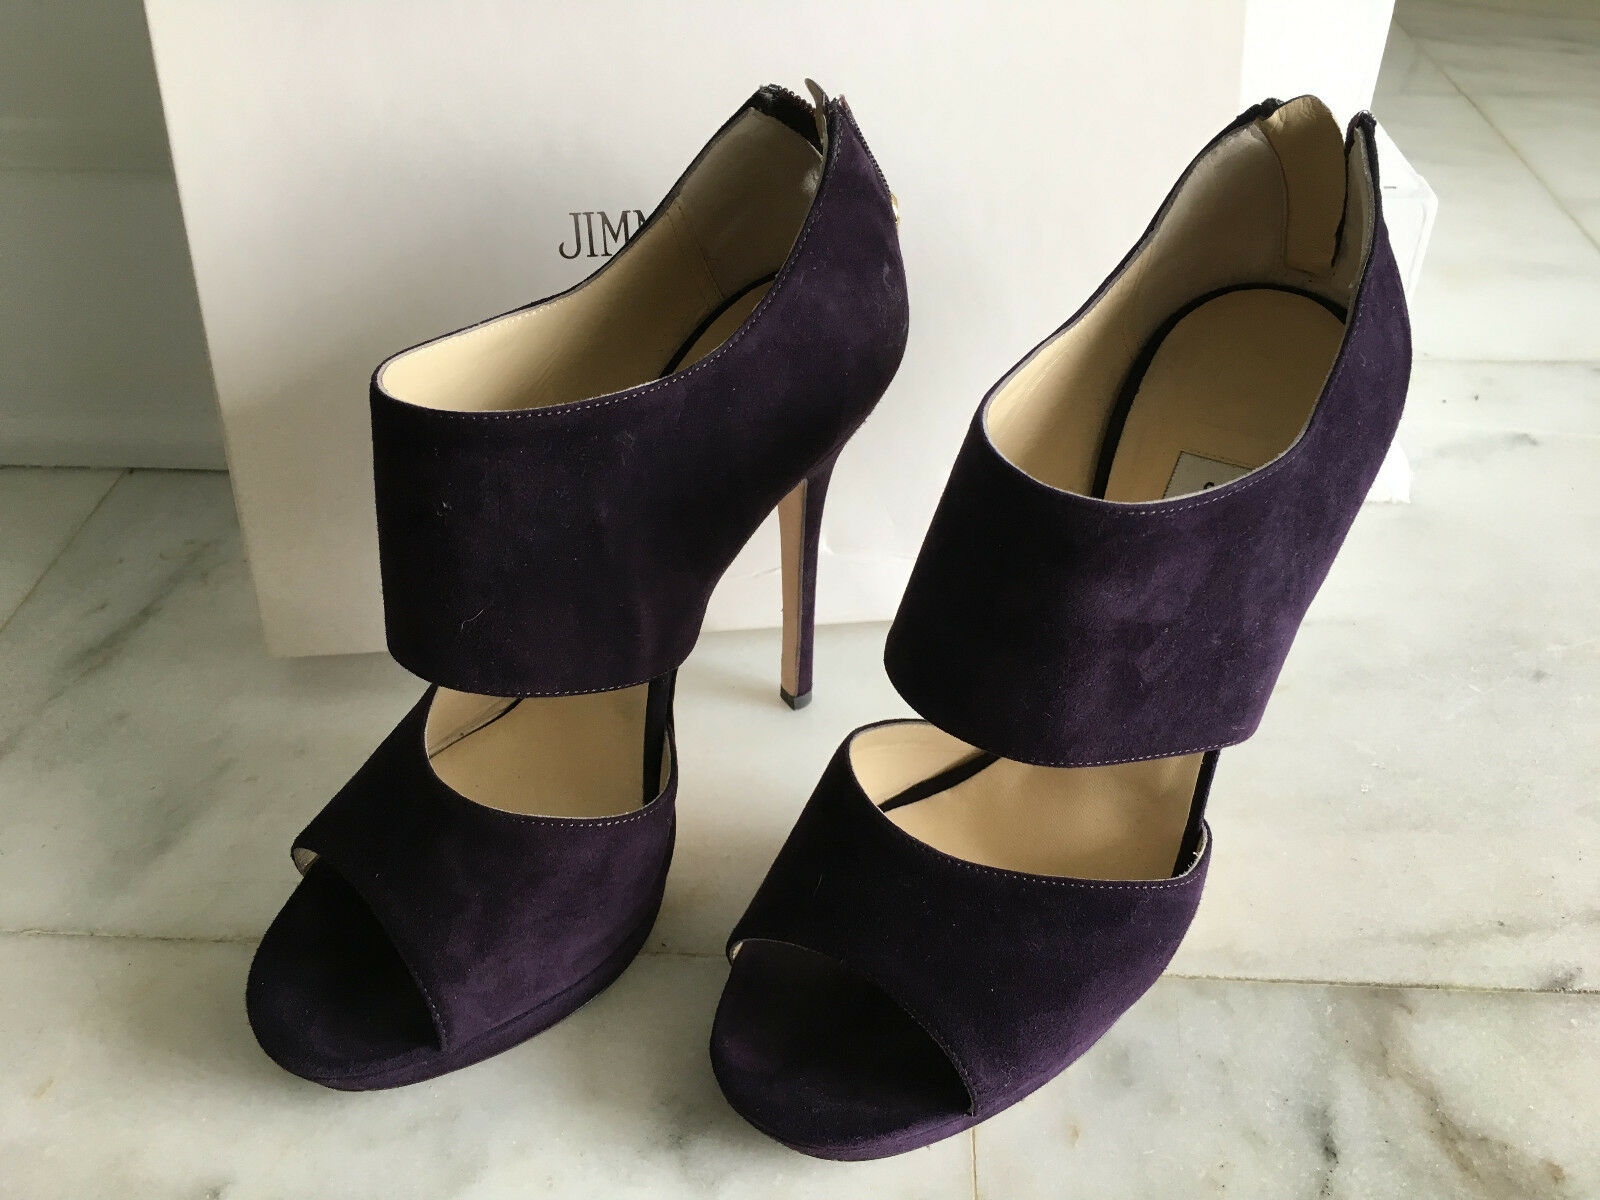 Authentic JIMMY CHOO Private violet Suede Taille 38 Worn Once